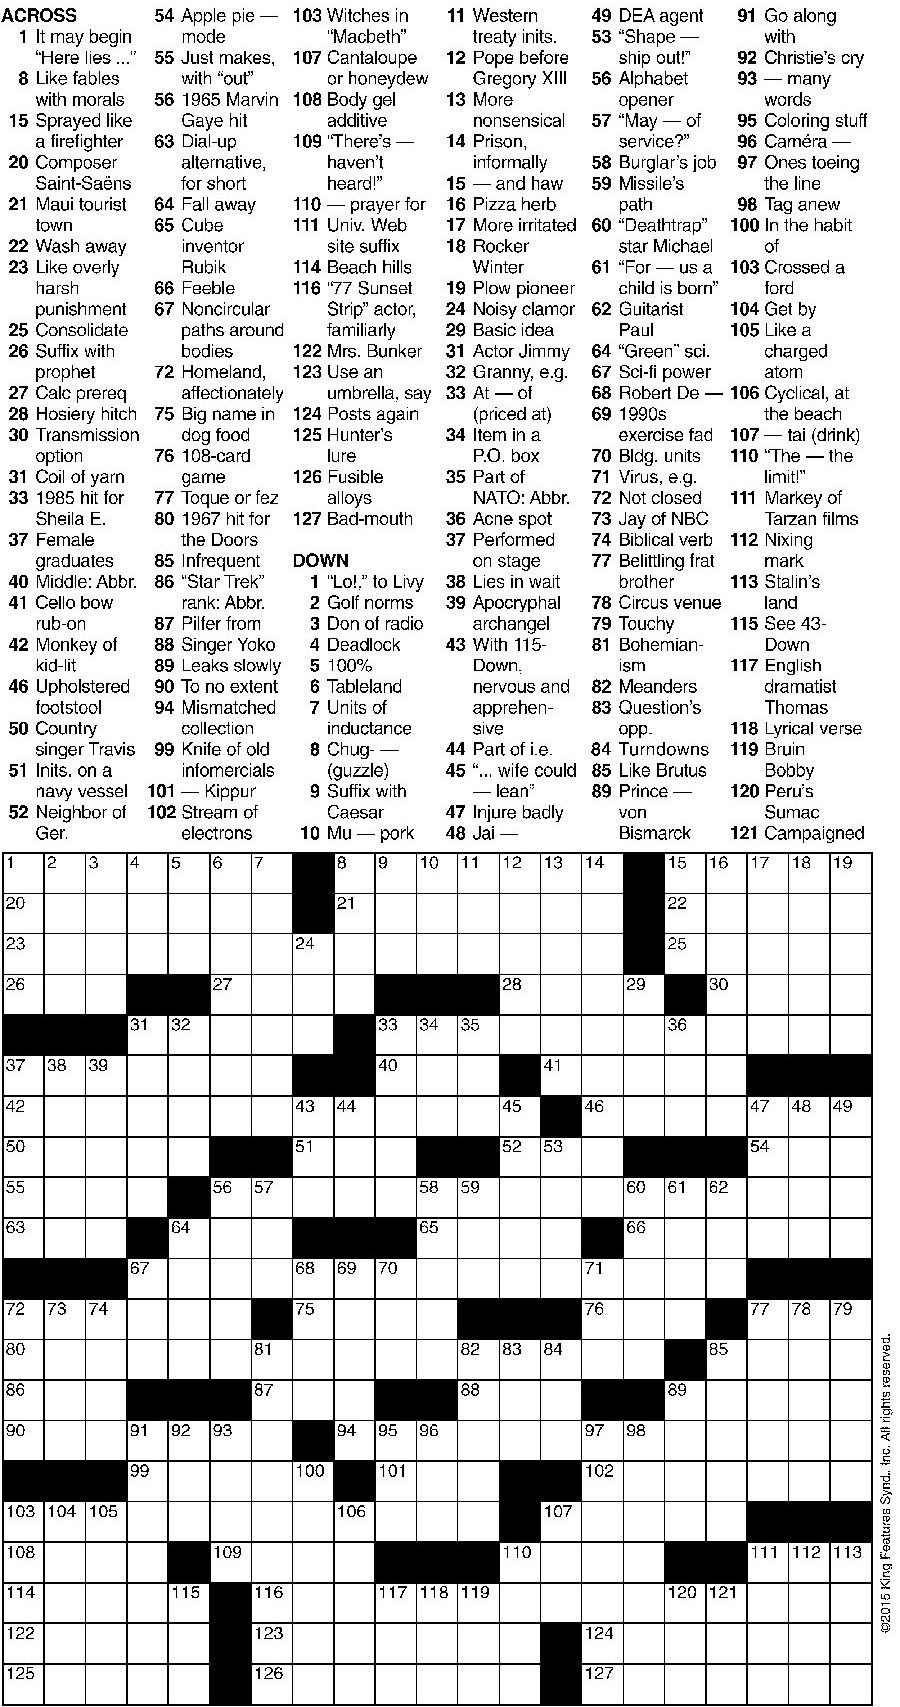 crossword_puzzle.jpg